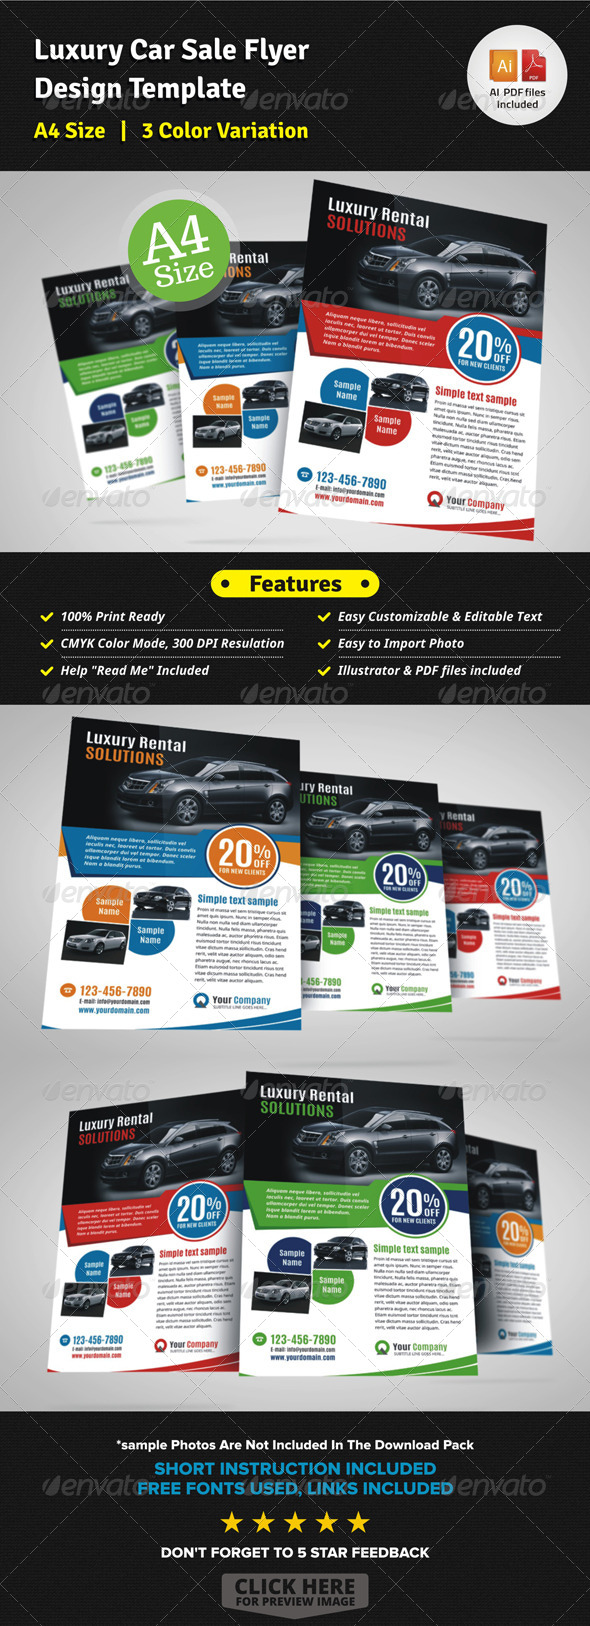 Luxury Car Sale Flyer Ad Design Template by JbnComilla GraphicRiver